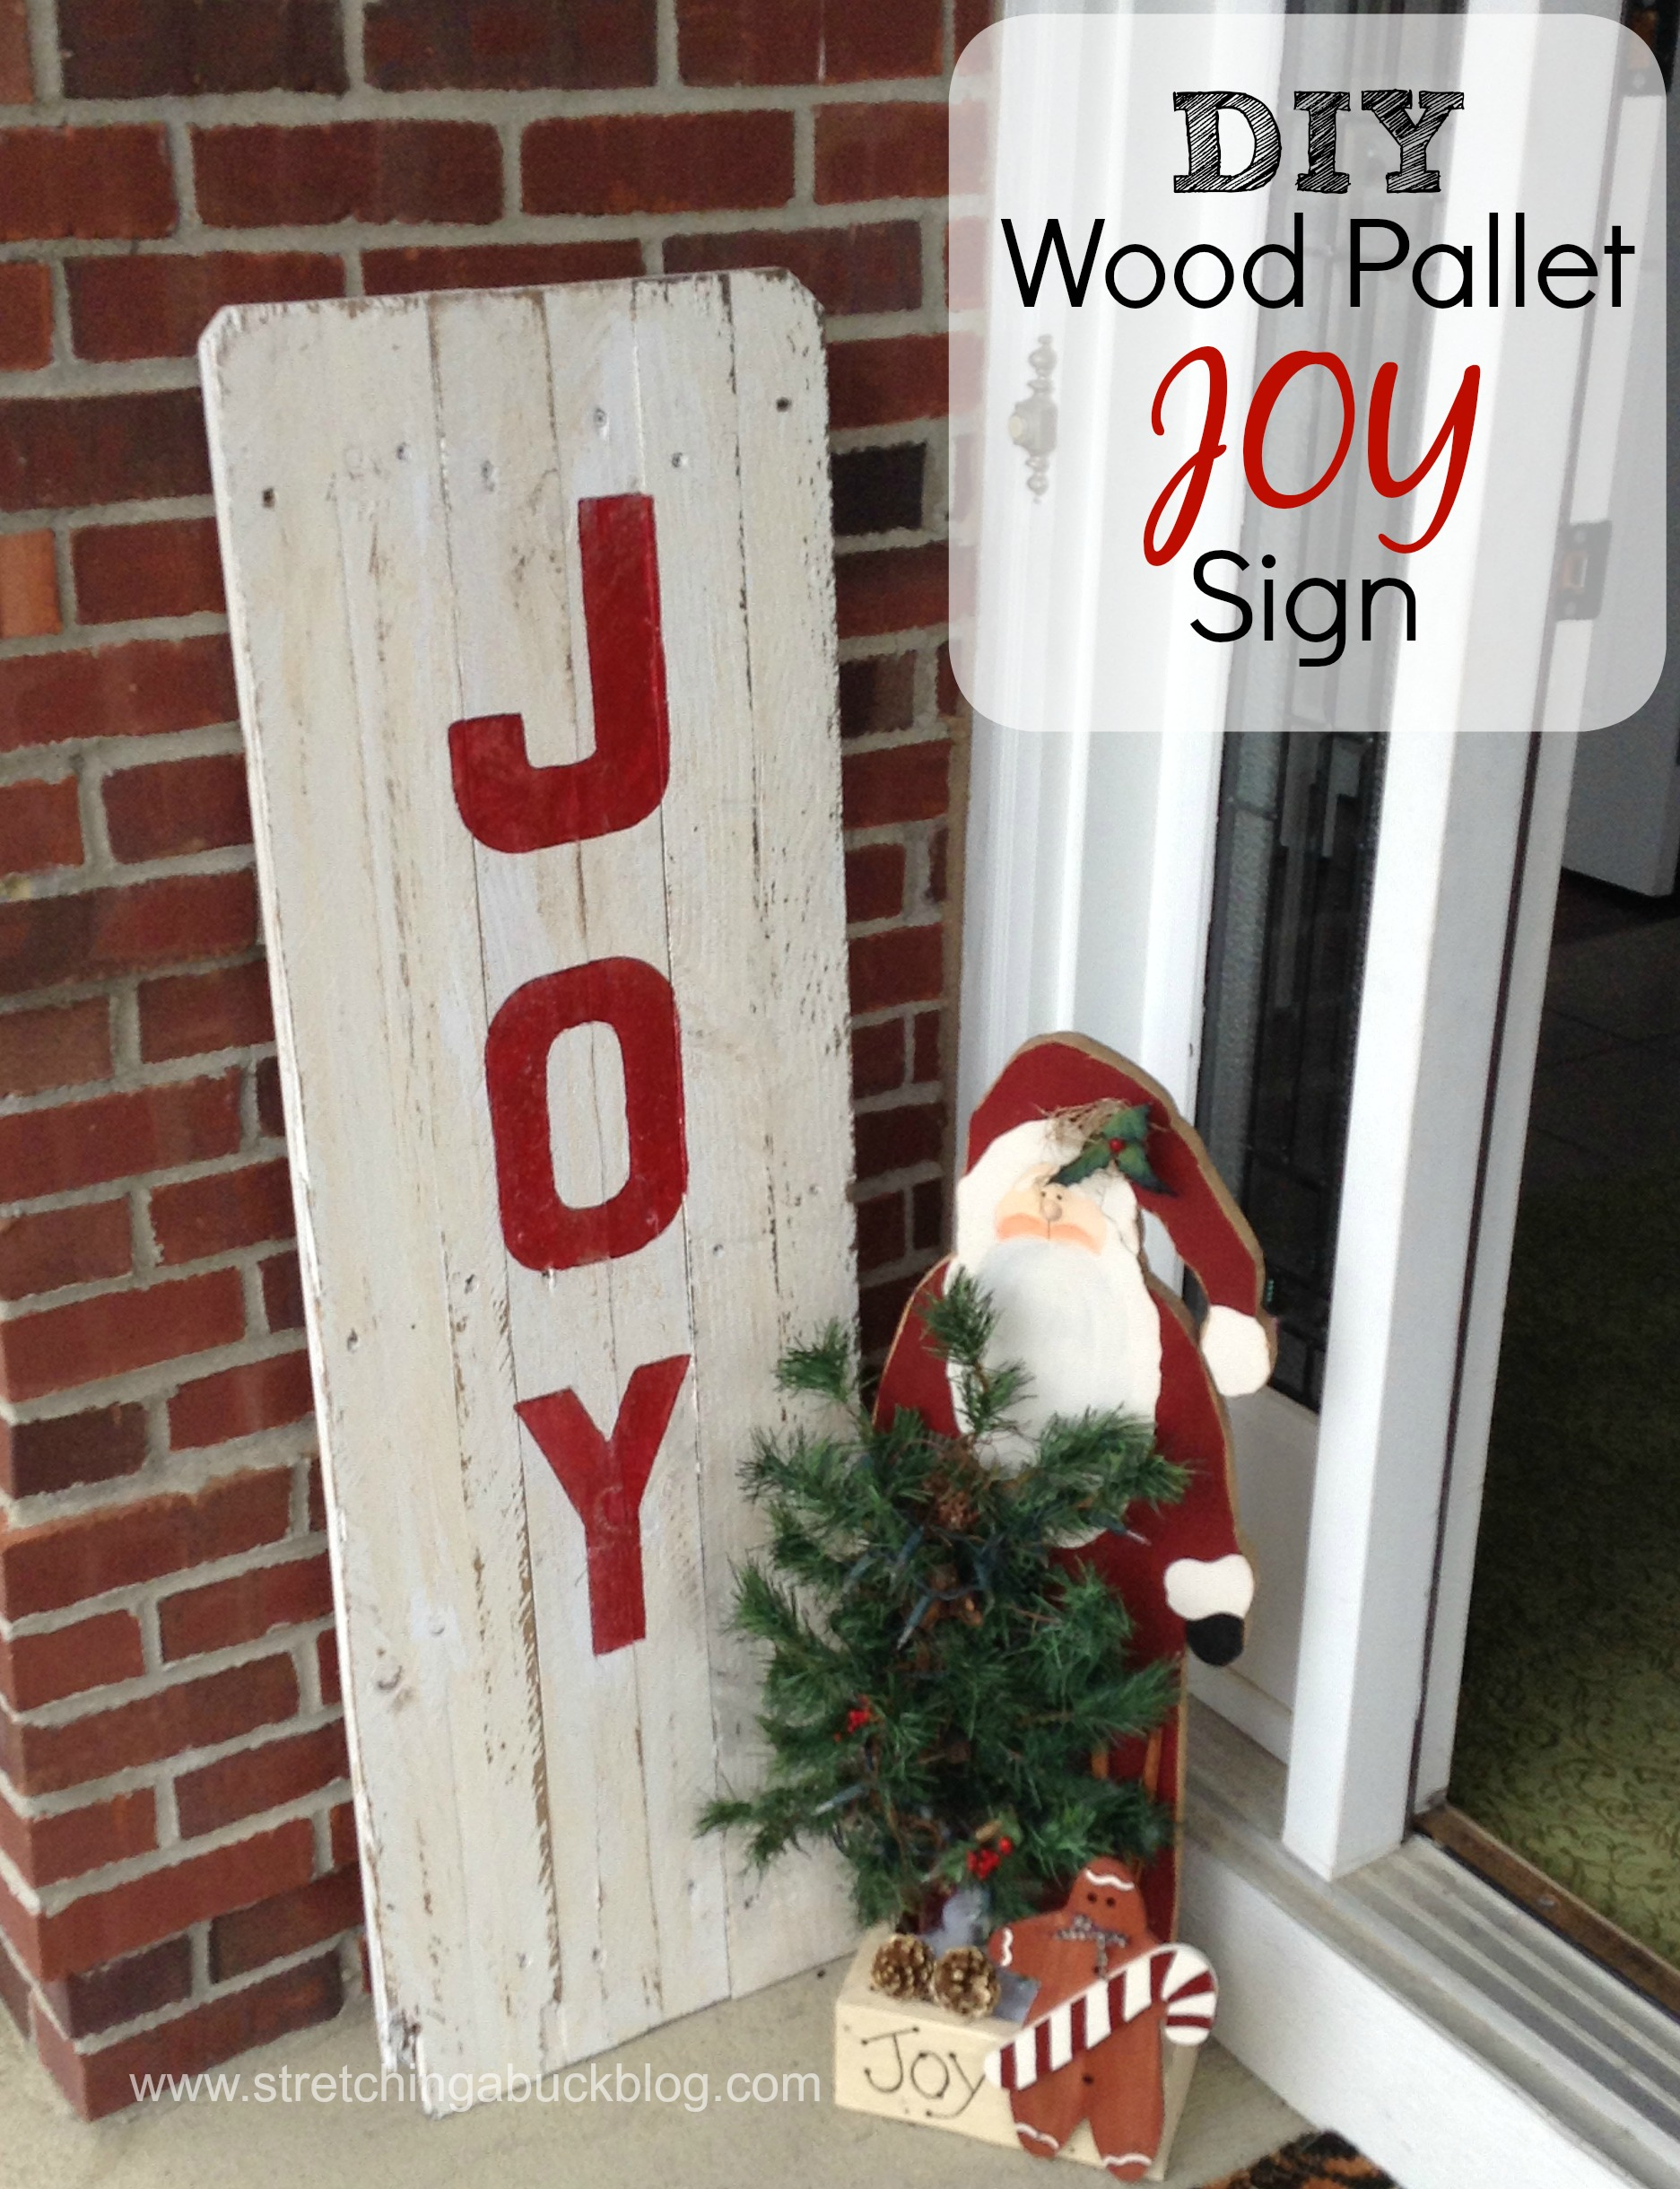 How To Make A Diy Wood Pallet Joy Sign Stretching A Buck